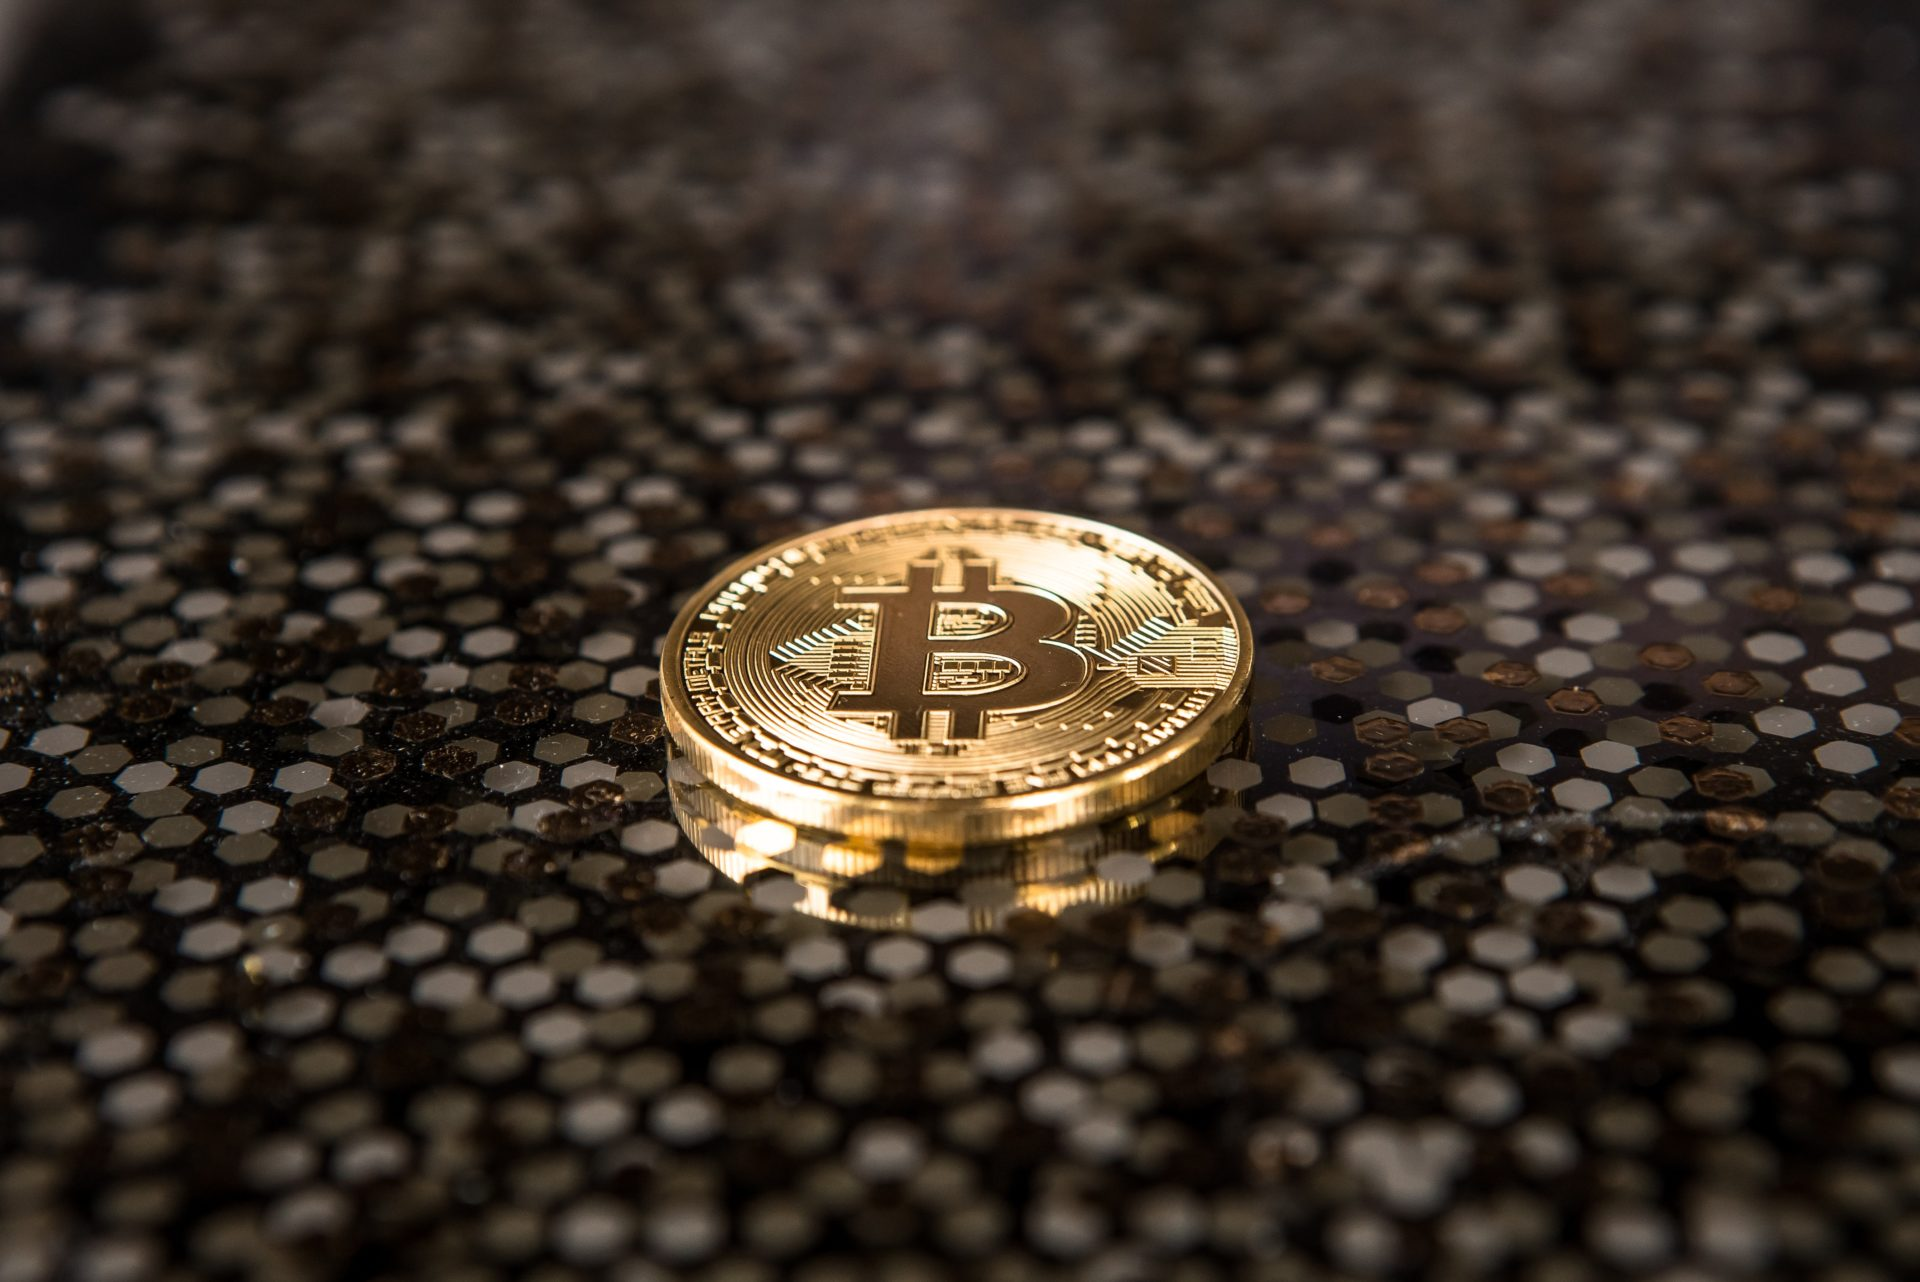 Bitcoin (BTC) May Be Nearing $6,000, But Is A Rebound Inbound? 13